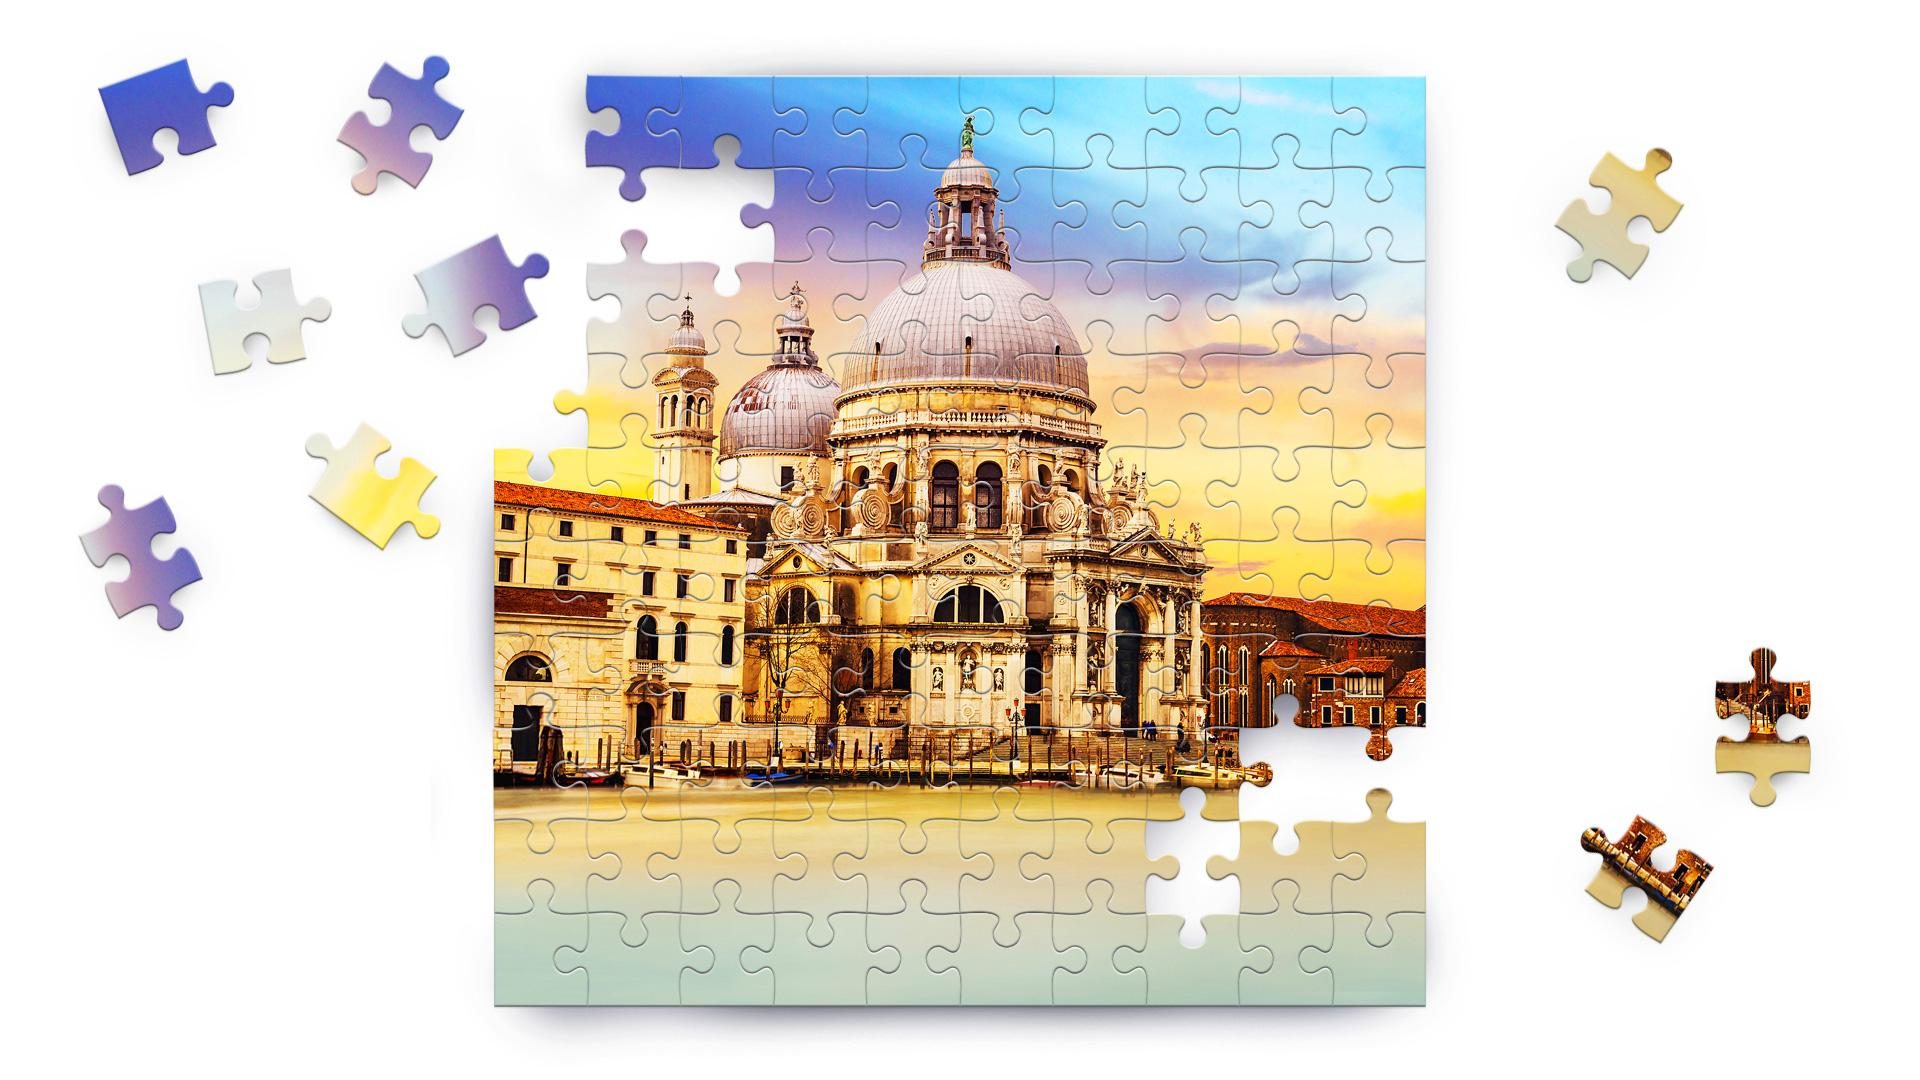 Jigsaw Puzzles by Easybrain now comes to Google Play